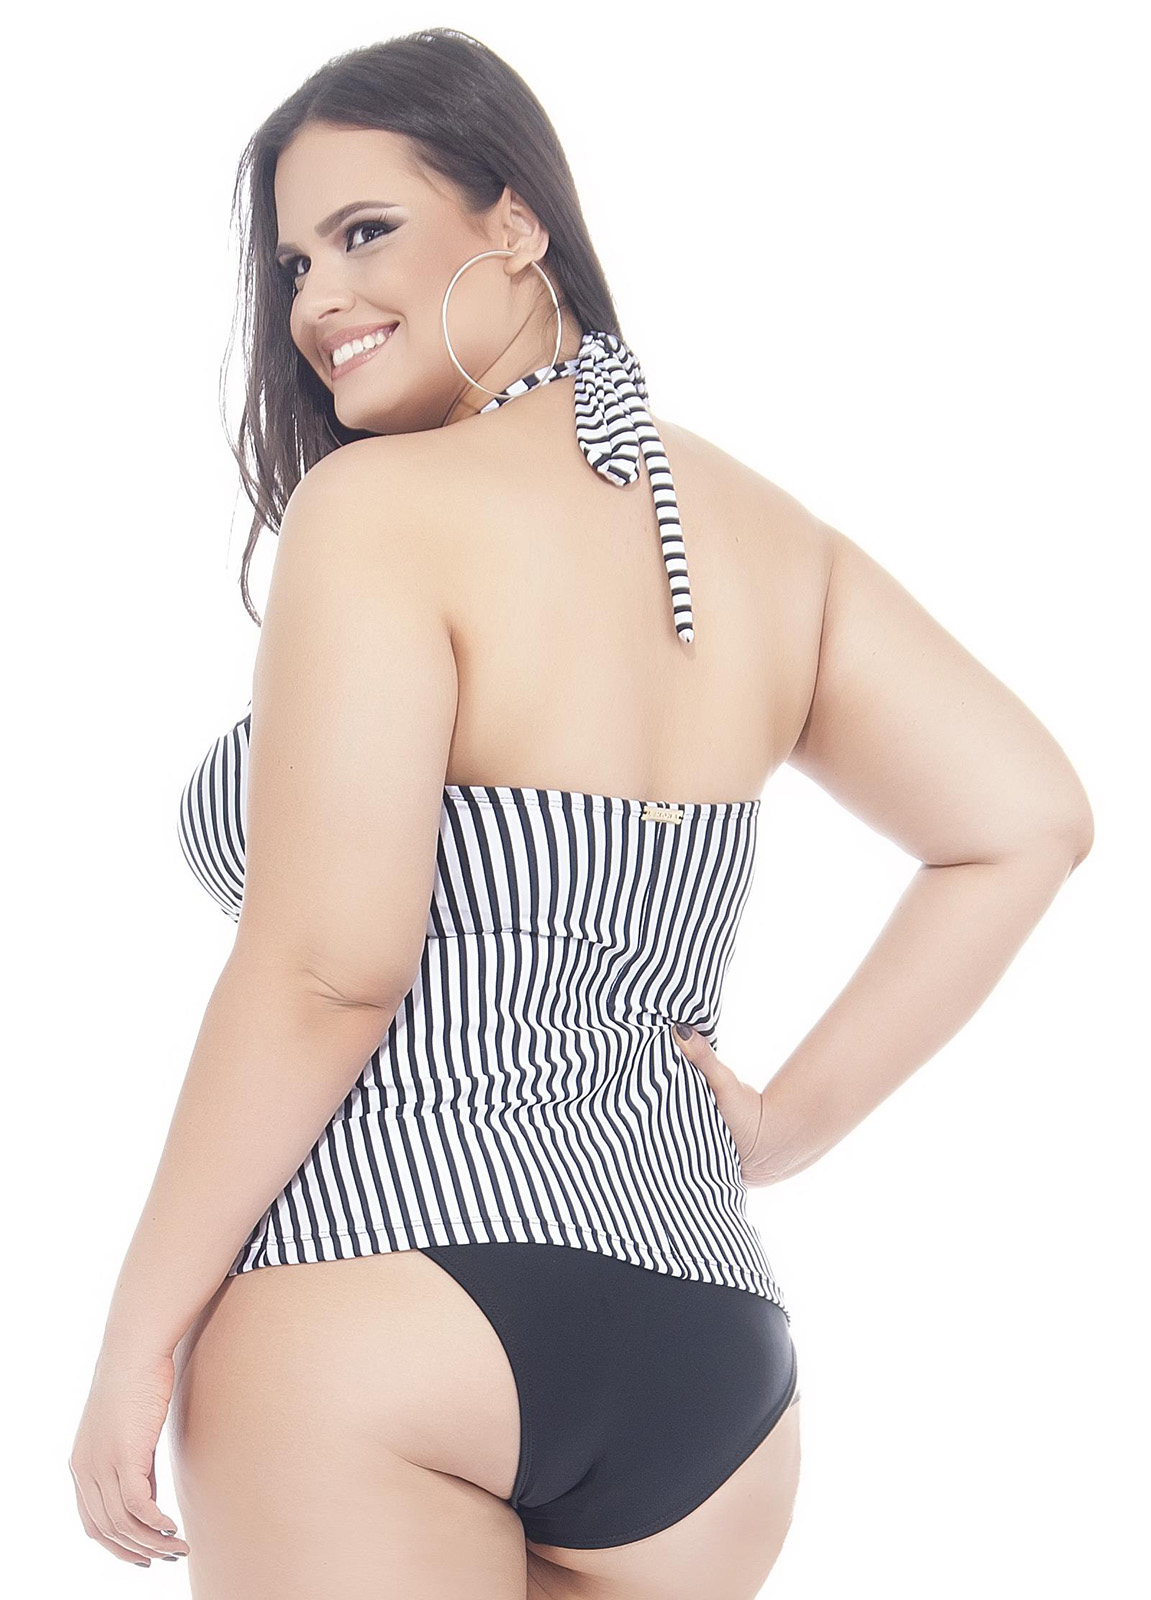 f8de25a1b0 Plus-size Black white Striped Tankini Top - Soutien Sol E Lua - Lehona